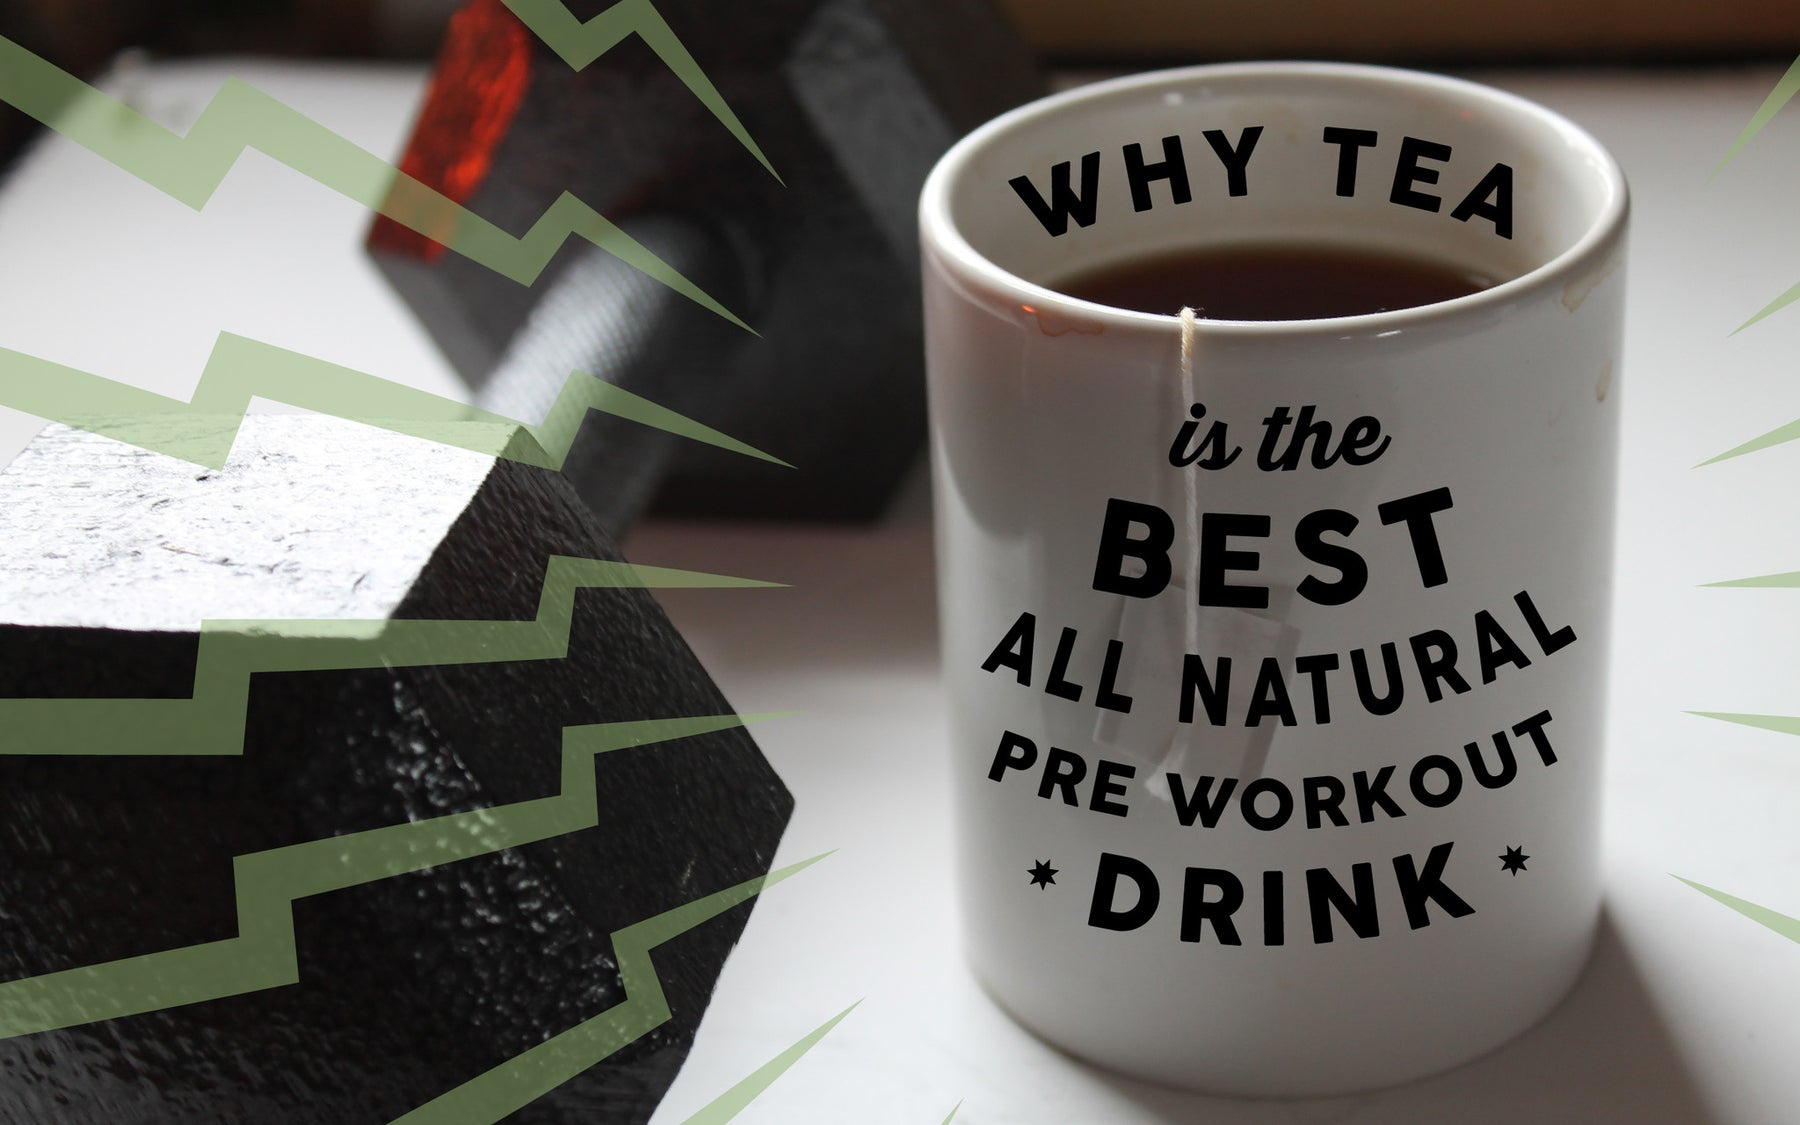 Why Tea is the Best All Natural Pre Workout Drink